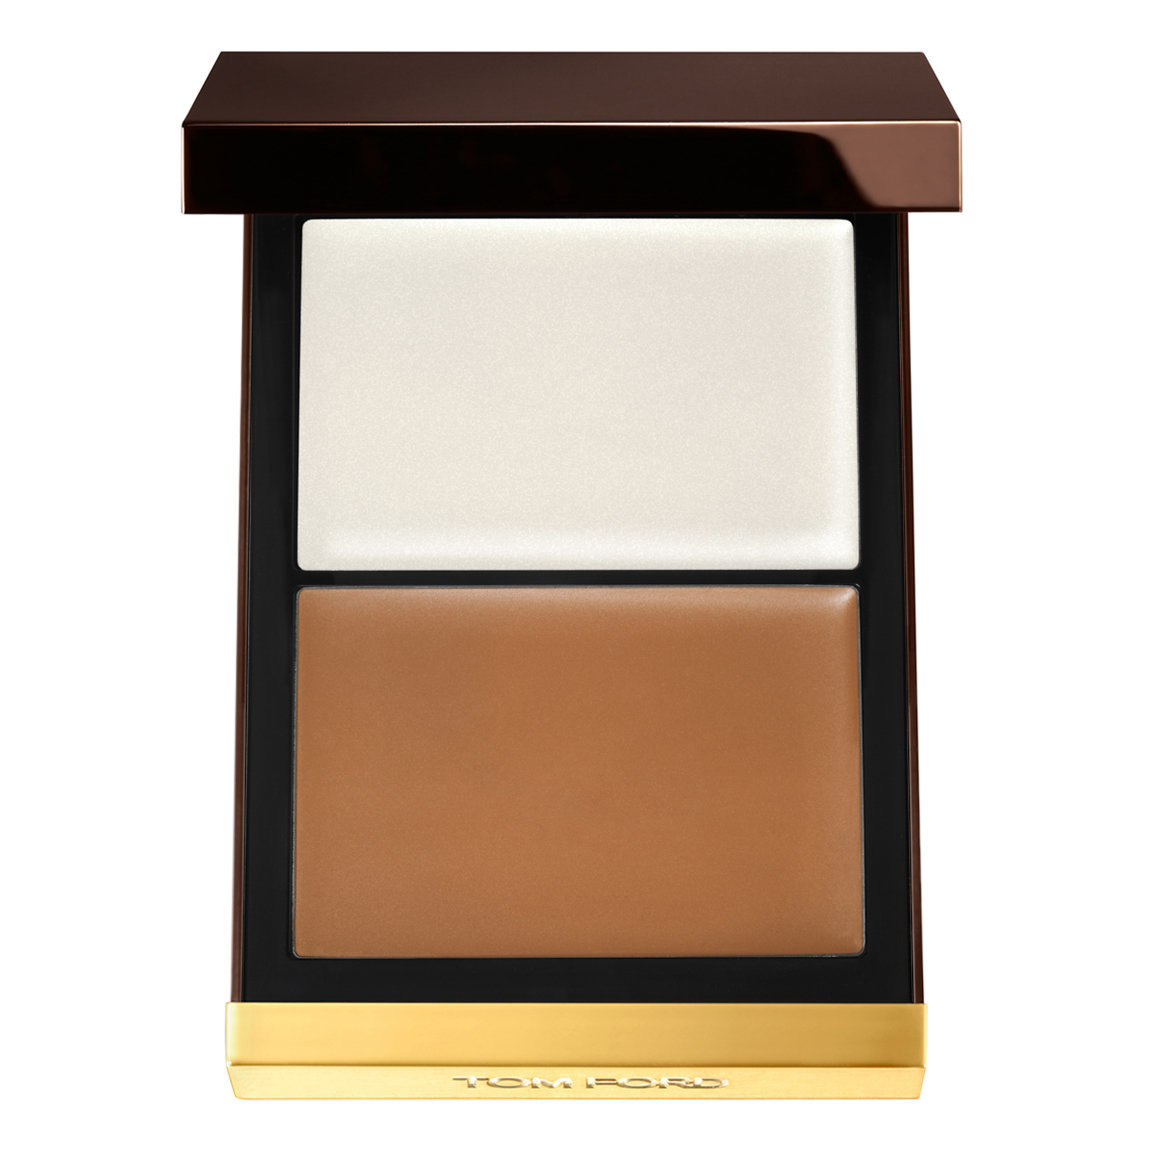 TOM FORD Shade and Illuminate Intensity 0.5 alternative view 1 - product swatch.